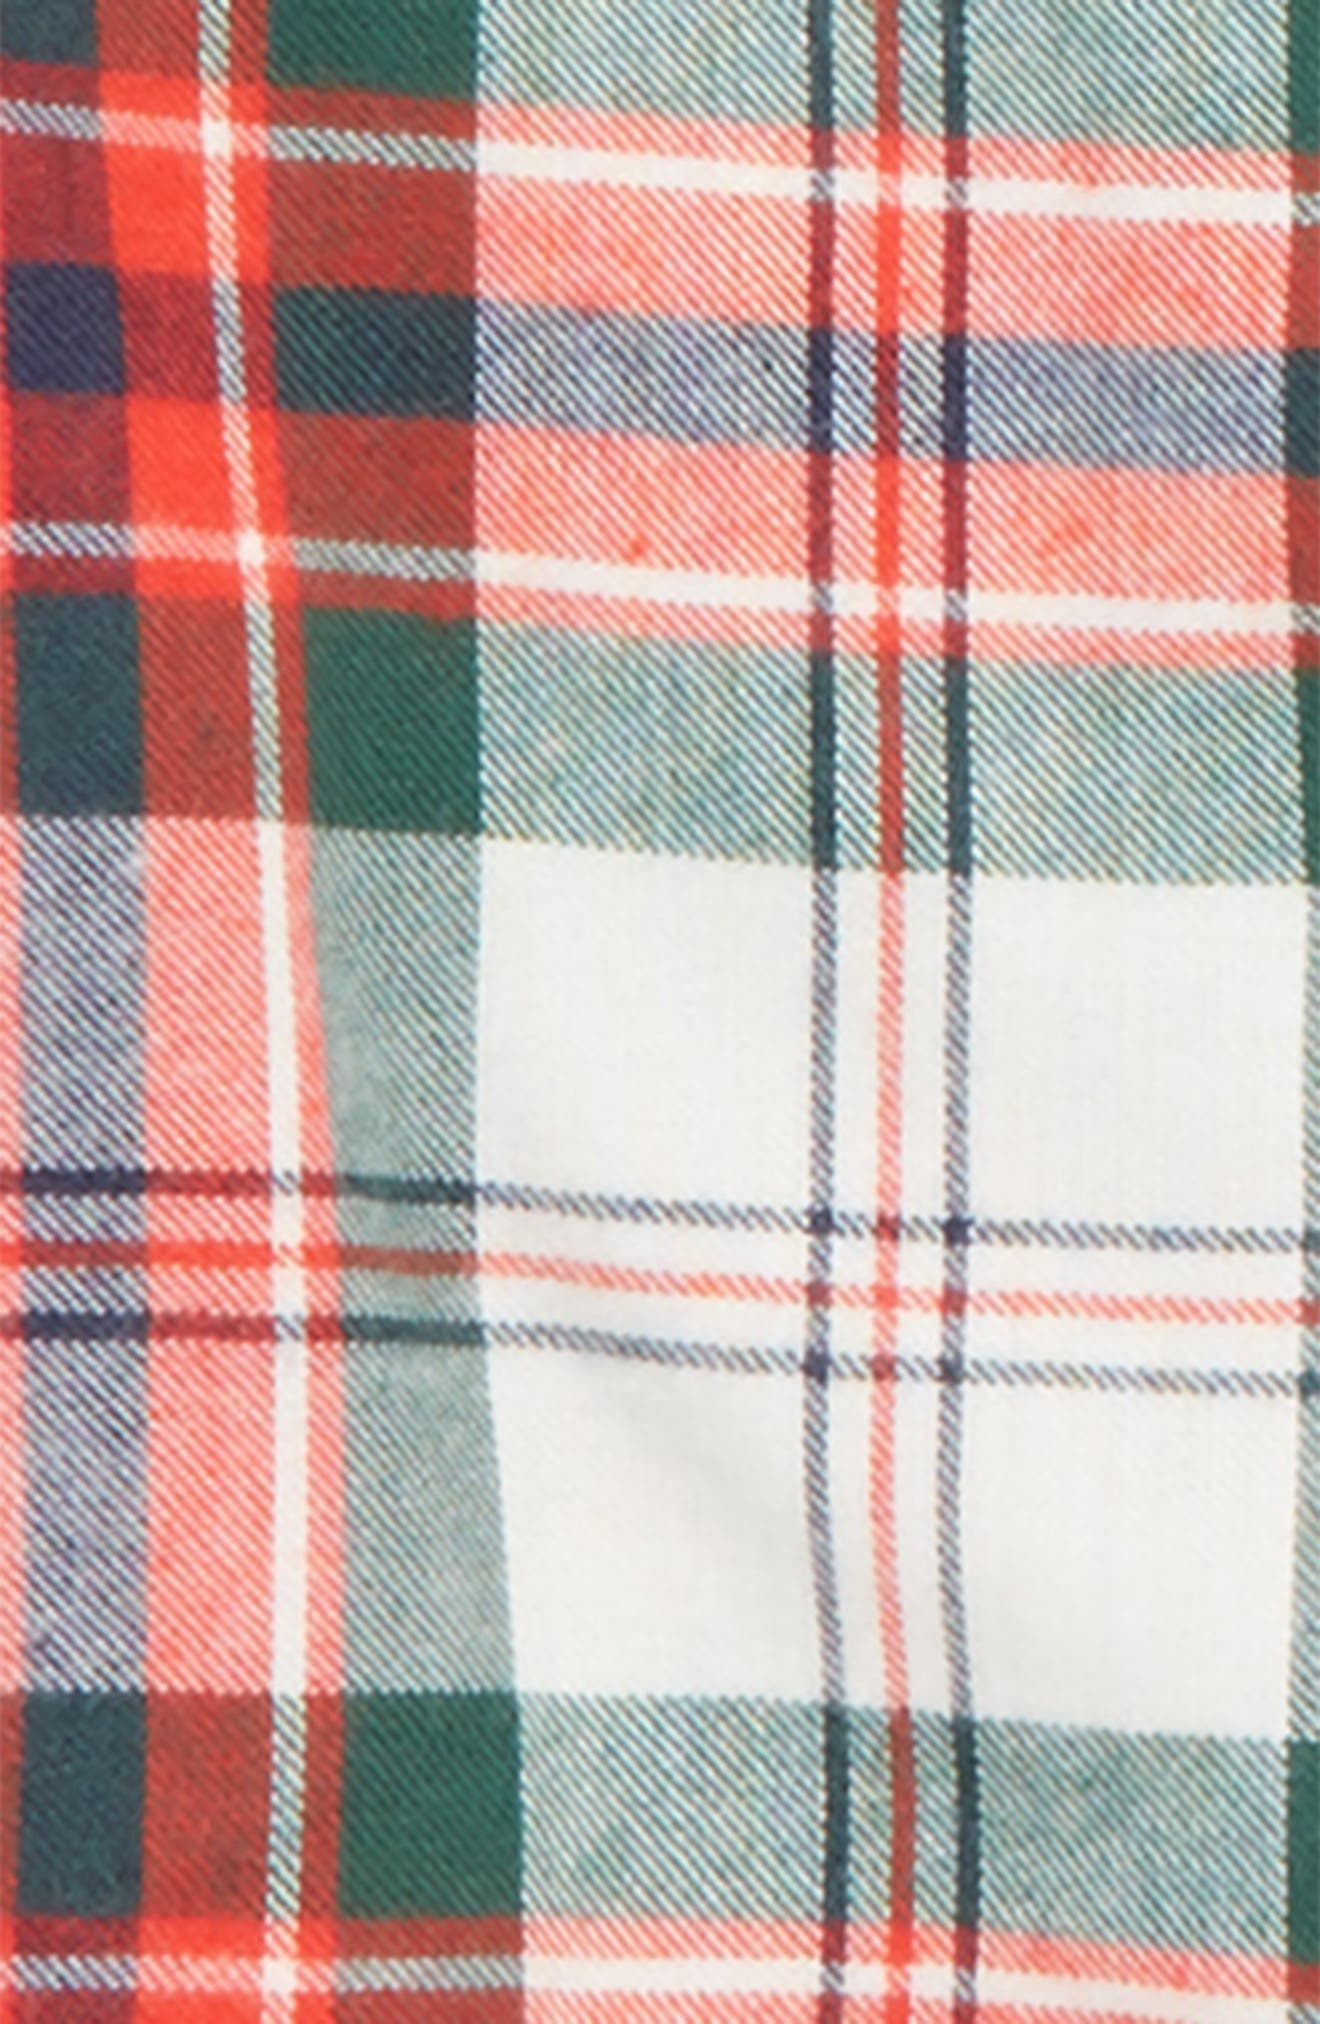 Two-Piece Flannel Pajamas,                             Alternate thumbnail 2, color,                             IVORY EGRET MACLEAN TARTAN